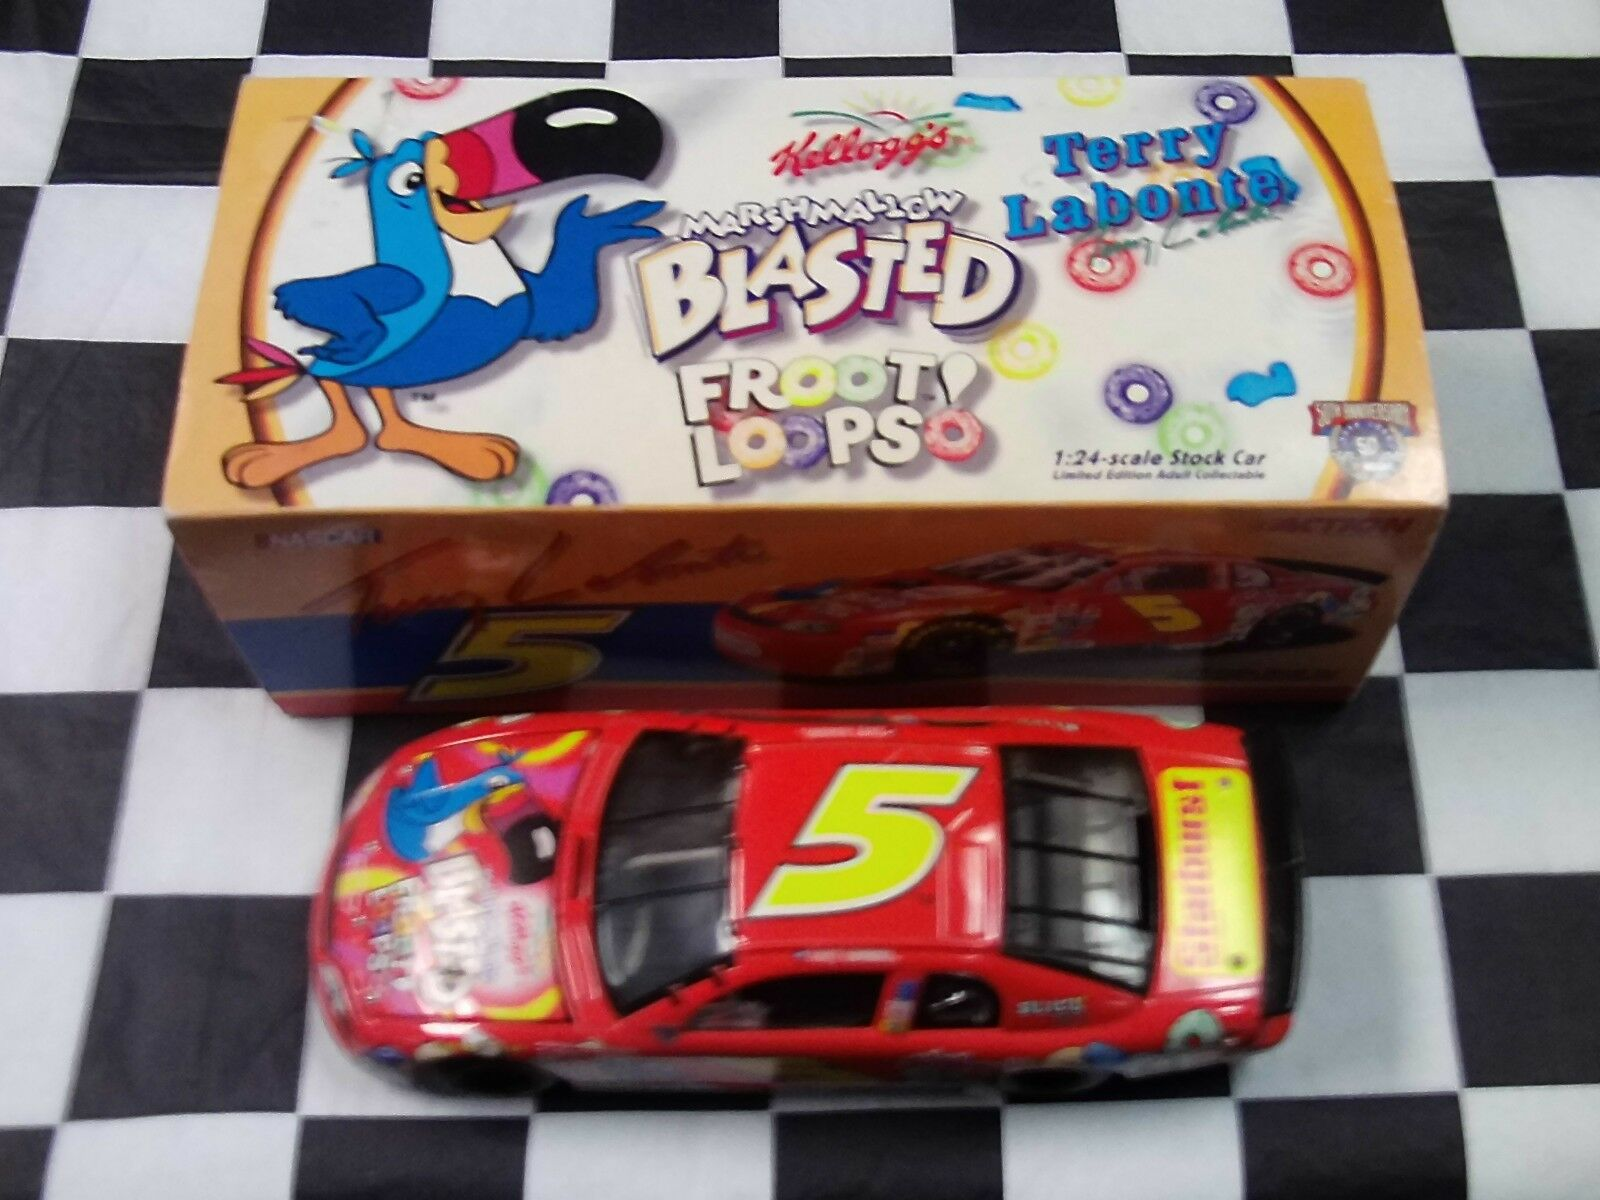 Terry Labonte Kellogg's Marshmallow Marshmallow Marshmallow Blasted Froot Loops 1998 1 24 Action RCCA 66f3b5